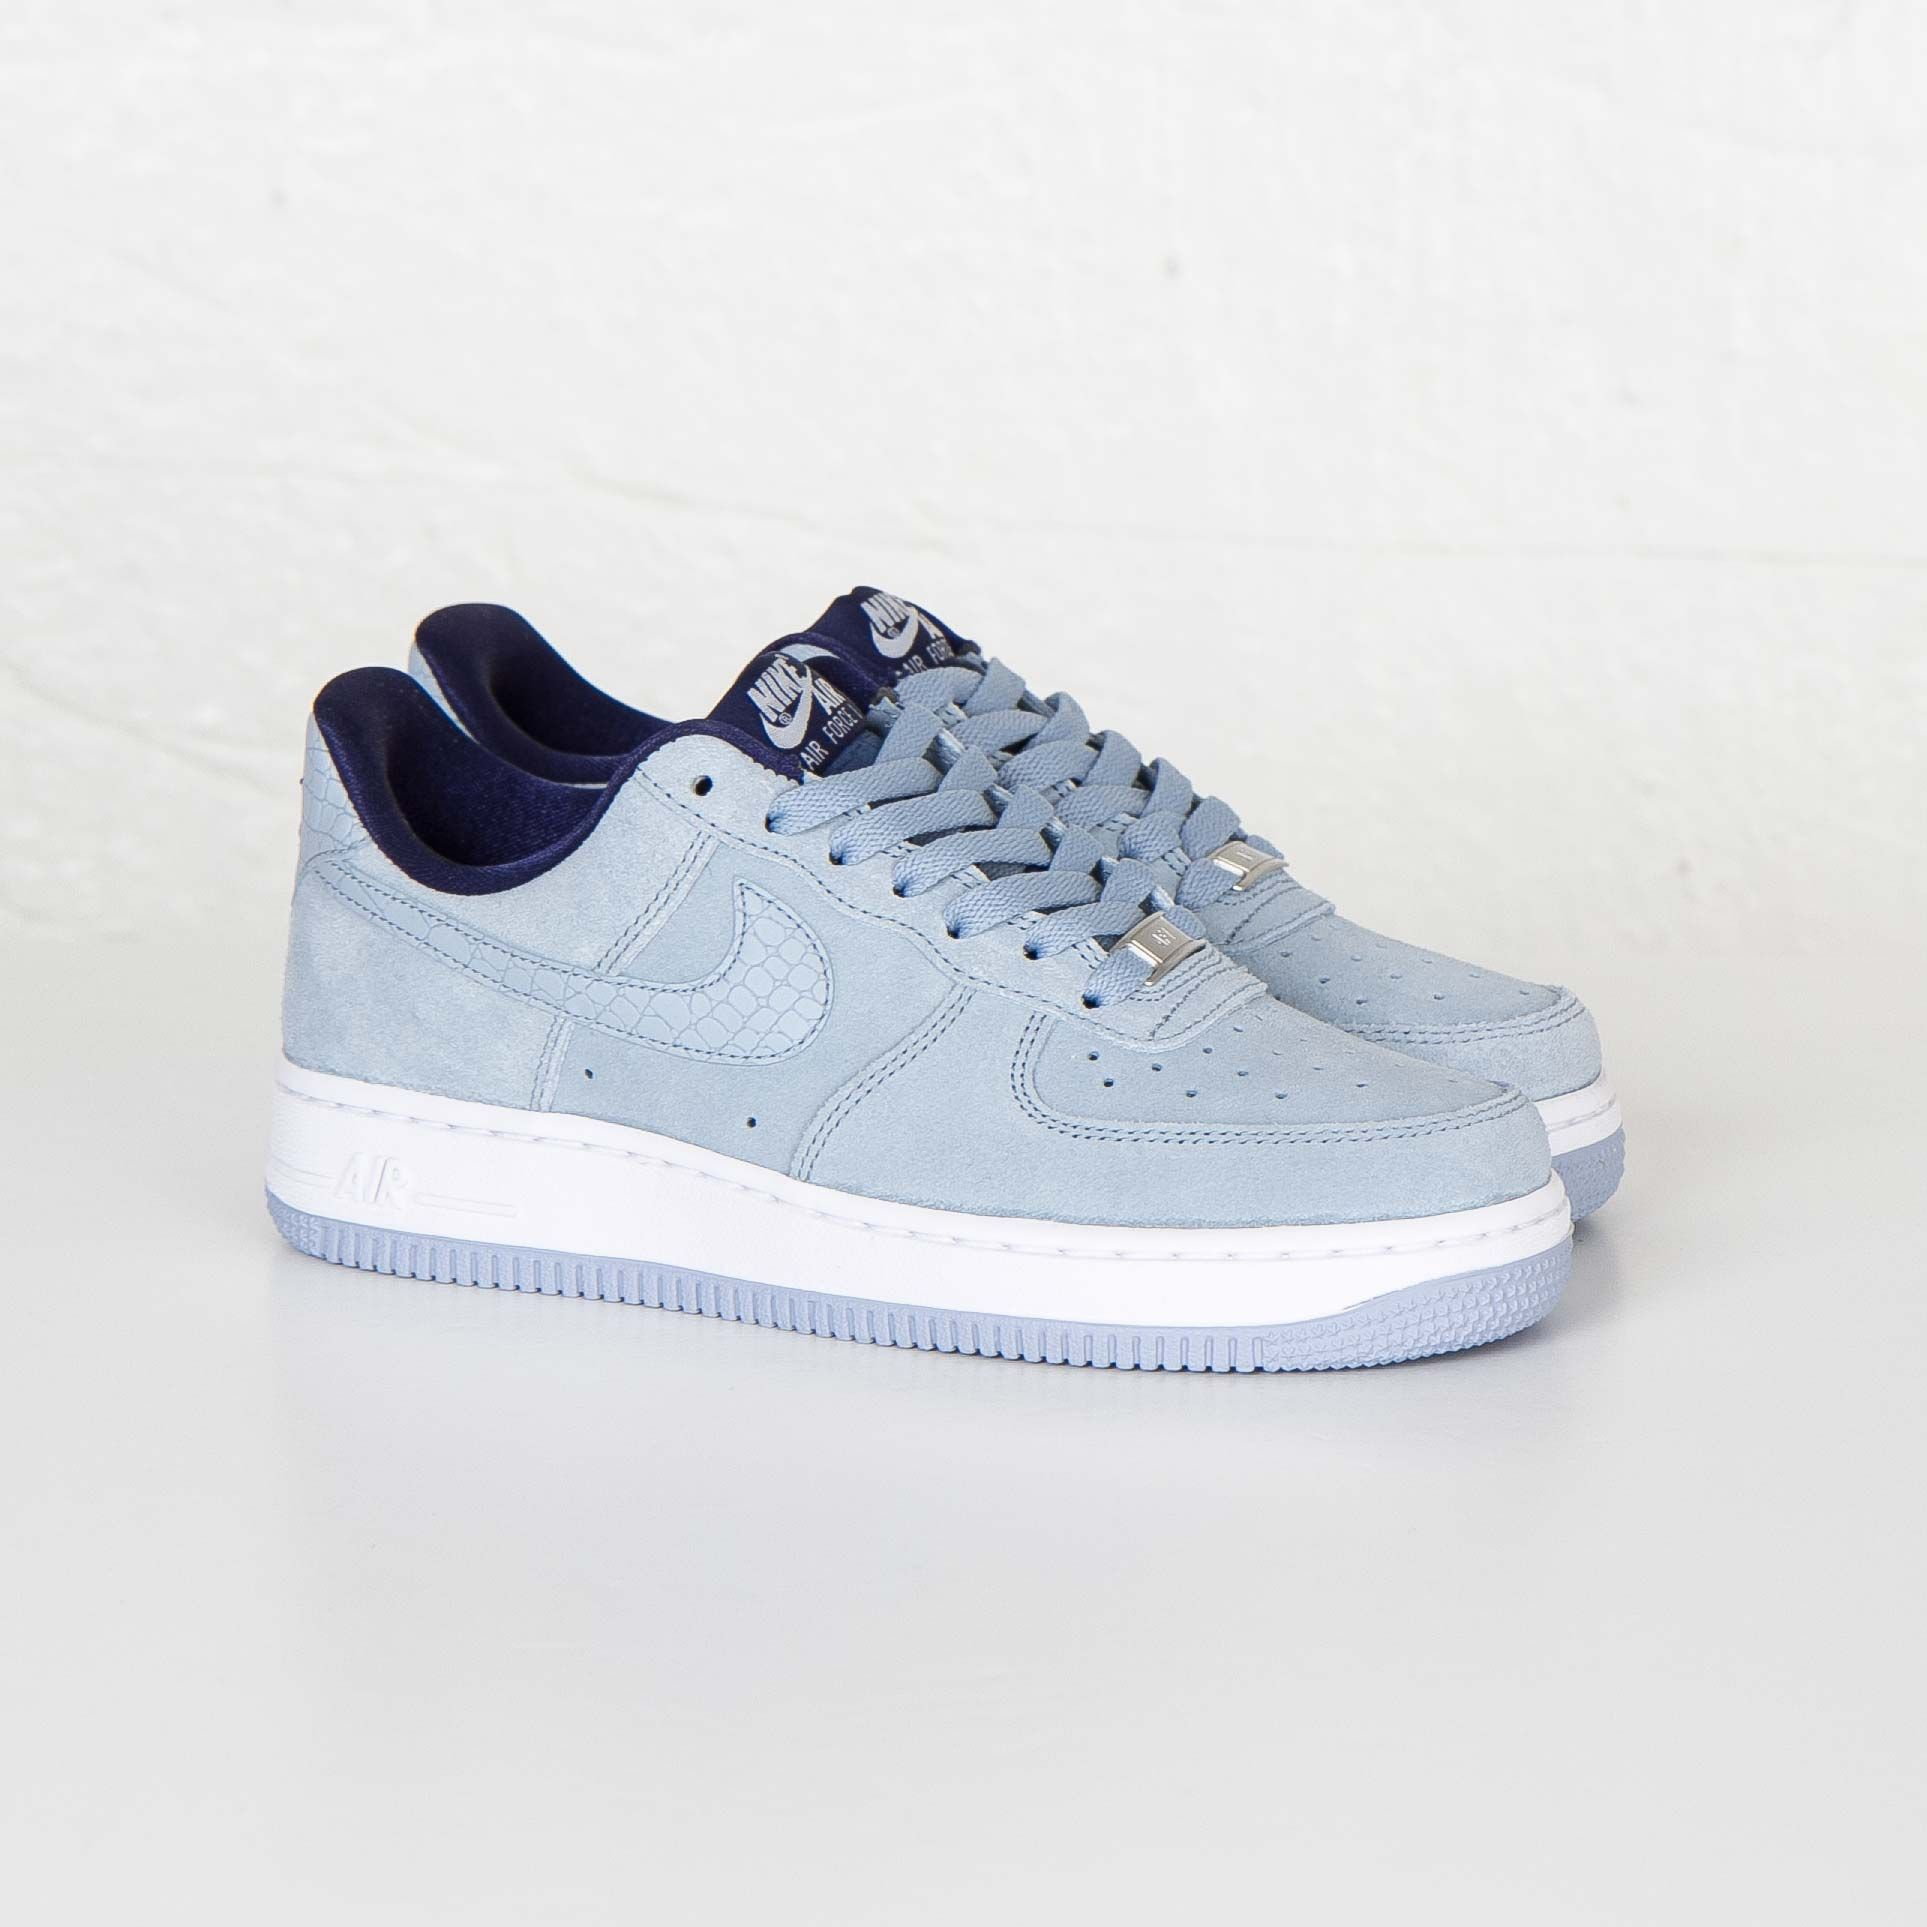 Nike Air Force 1 07 Saisonnier